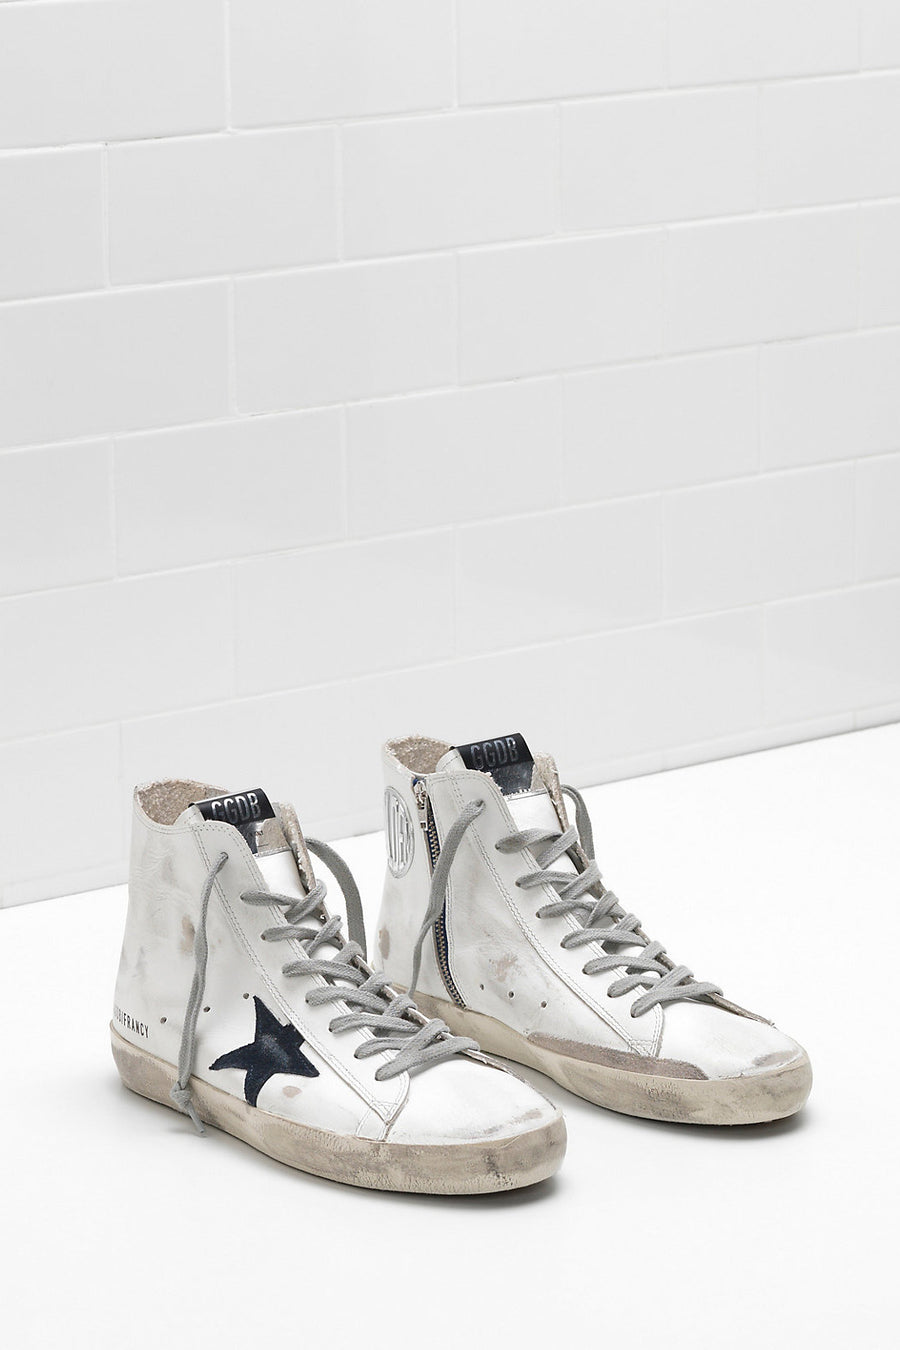 Francy Sneakers - Men's White Bluette Zip - Pavilion